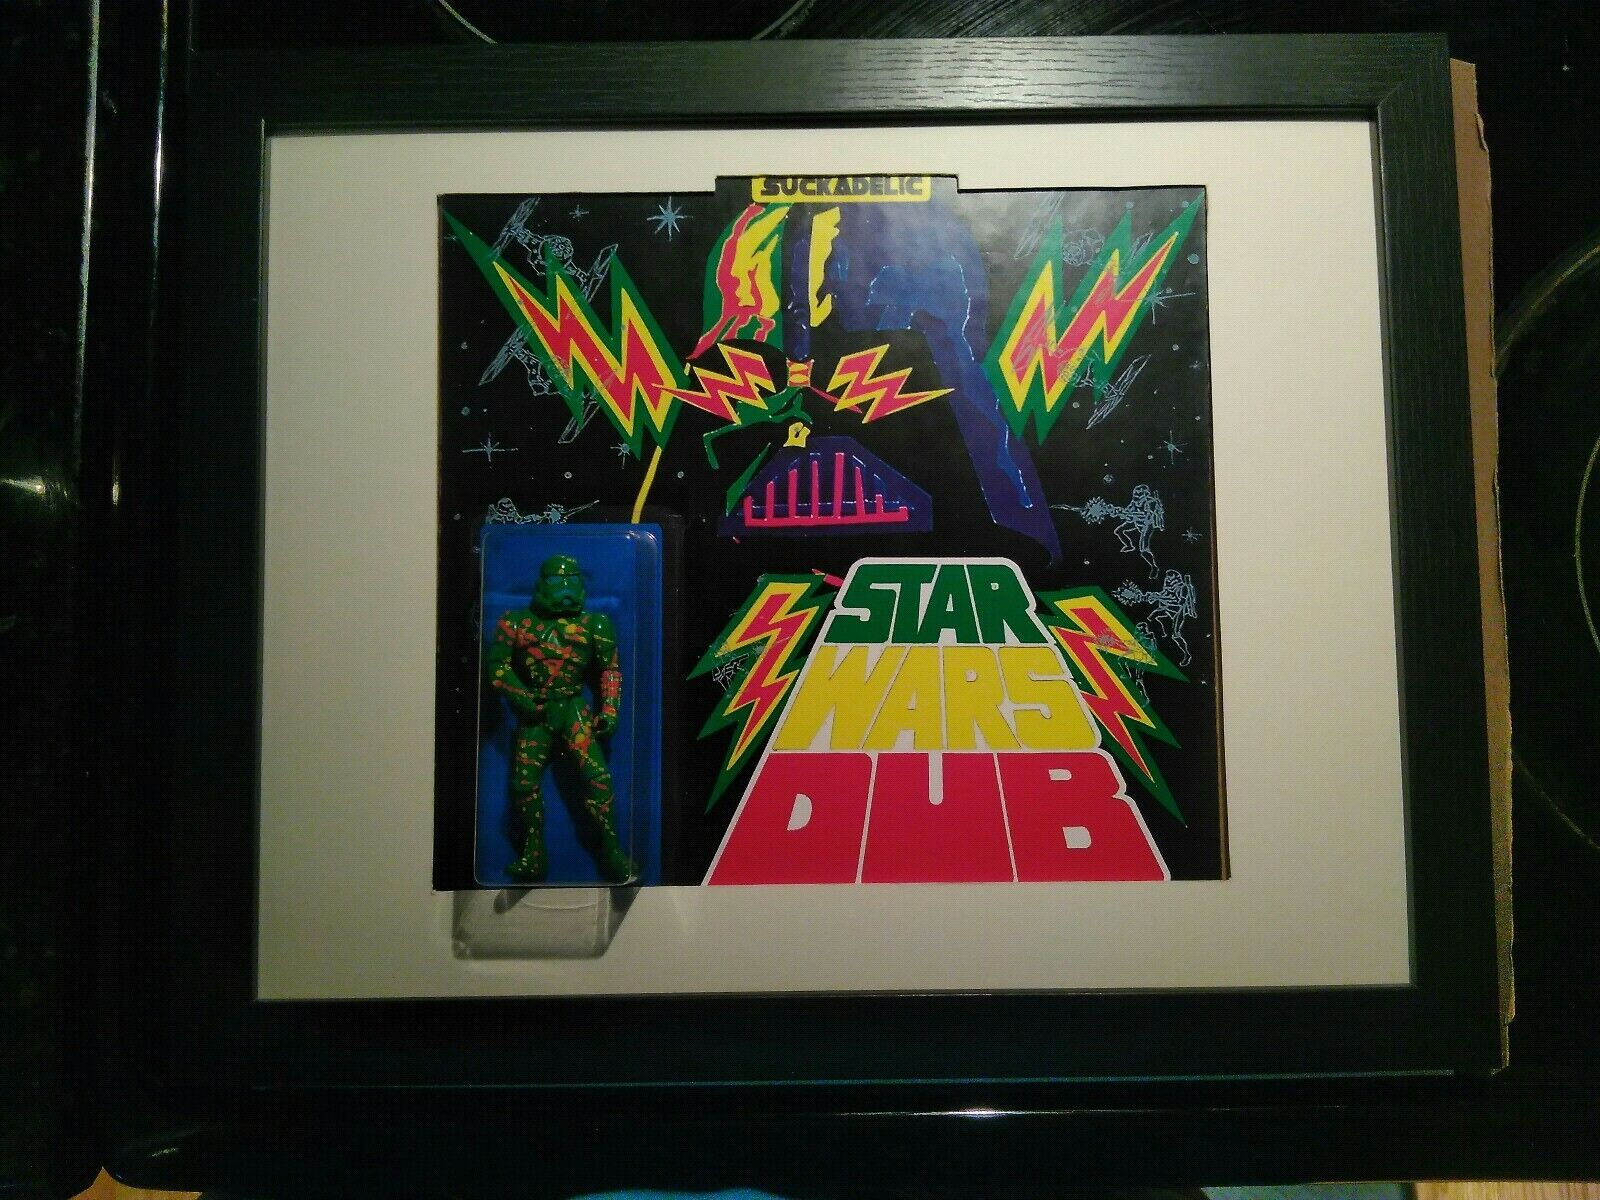 SUCKLORD STAR WARS DUB SUCKADELIC STORMTROOPER StiefelLEG ONE OFF SIGNED FRAMED